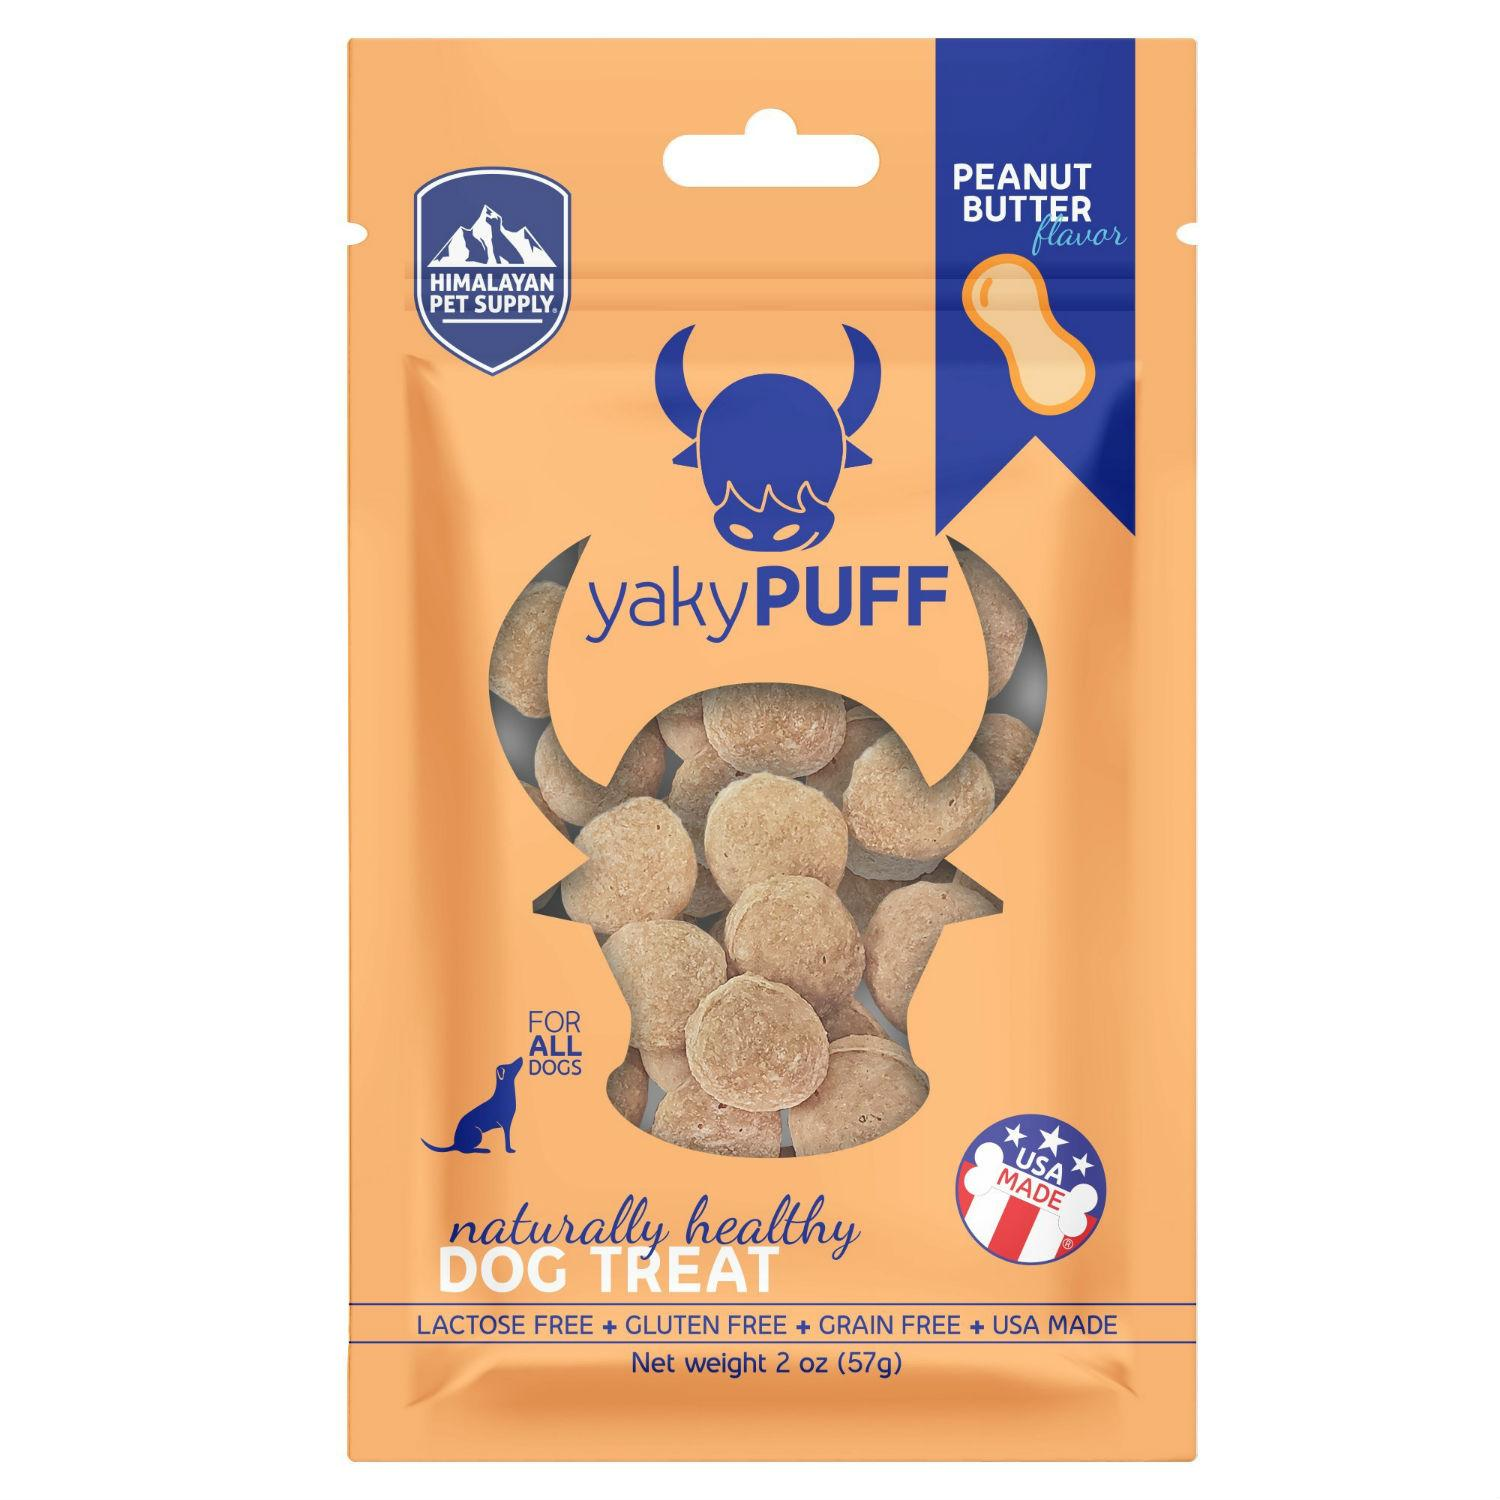 Himalayan Yaky Puff Dog Treat - Peanut Butter